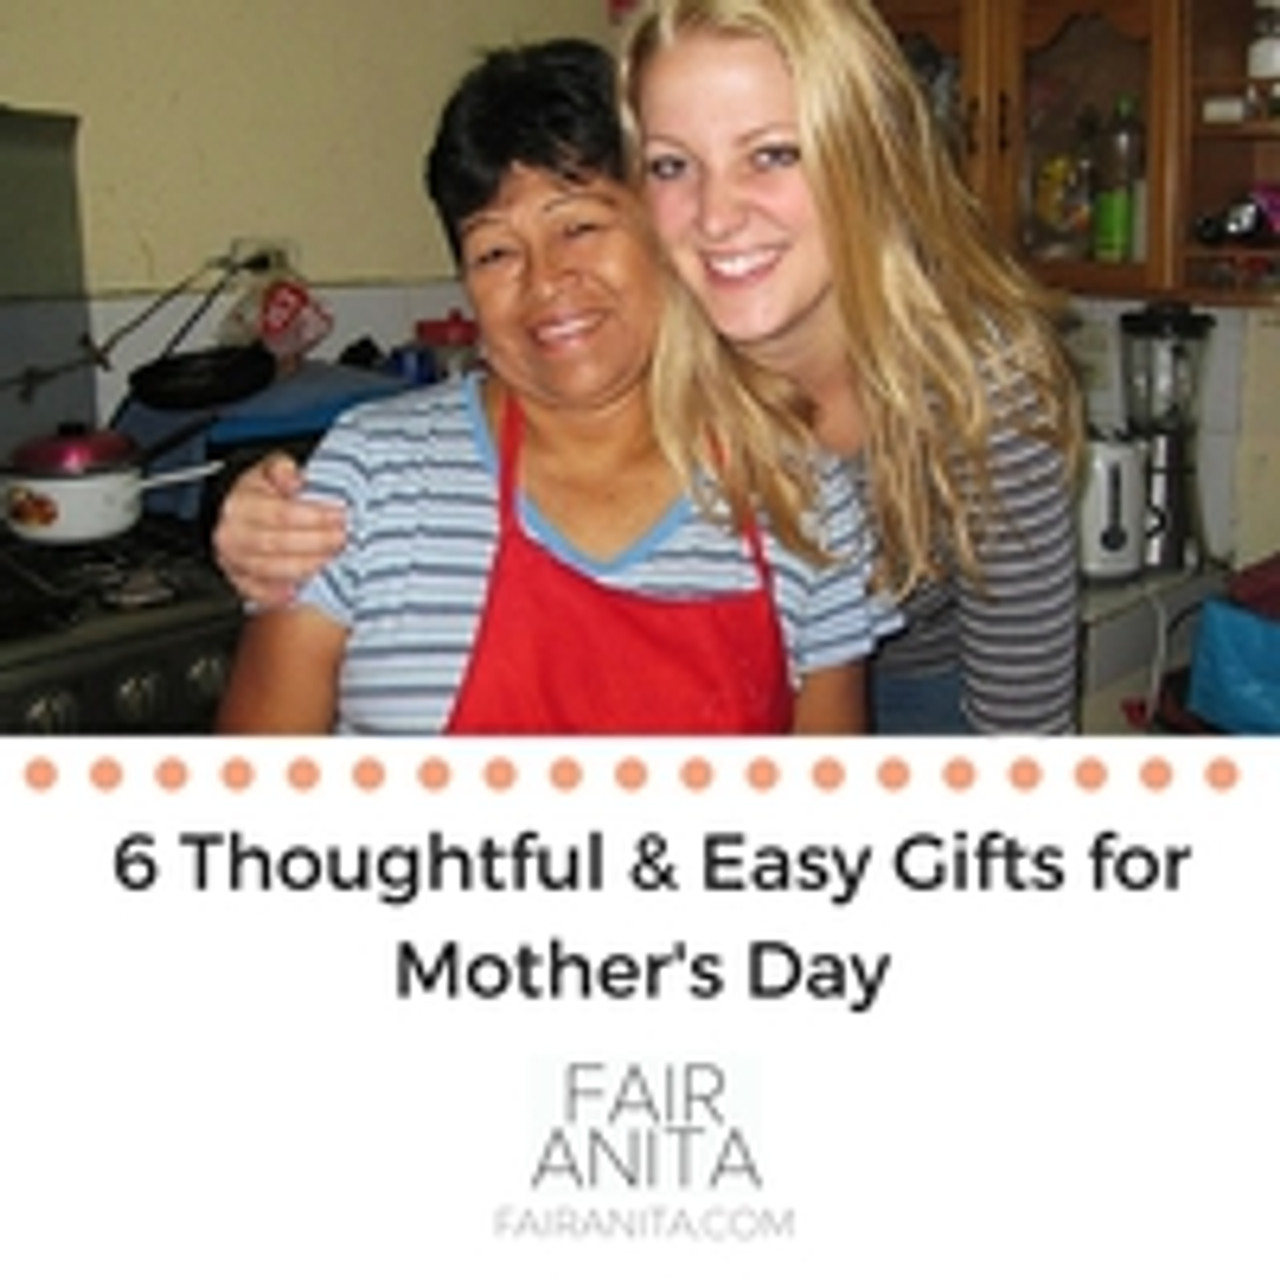 6 Thoughtful & Easy Gifts for Mother's Day